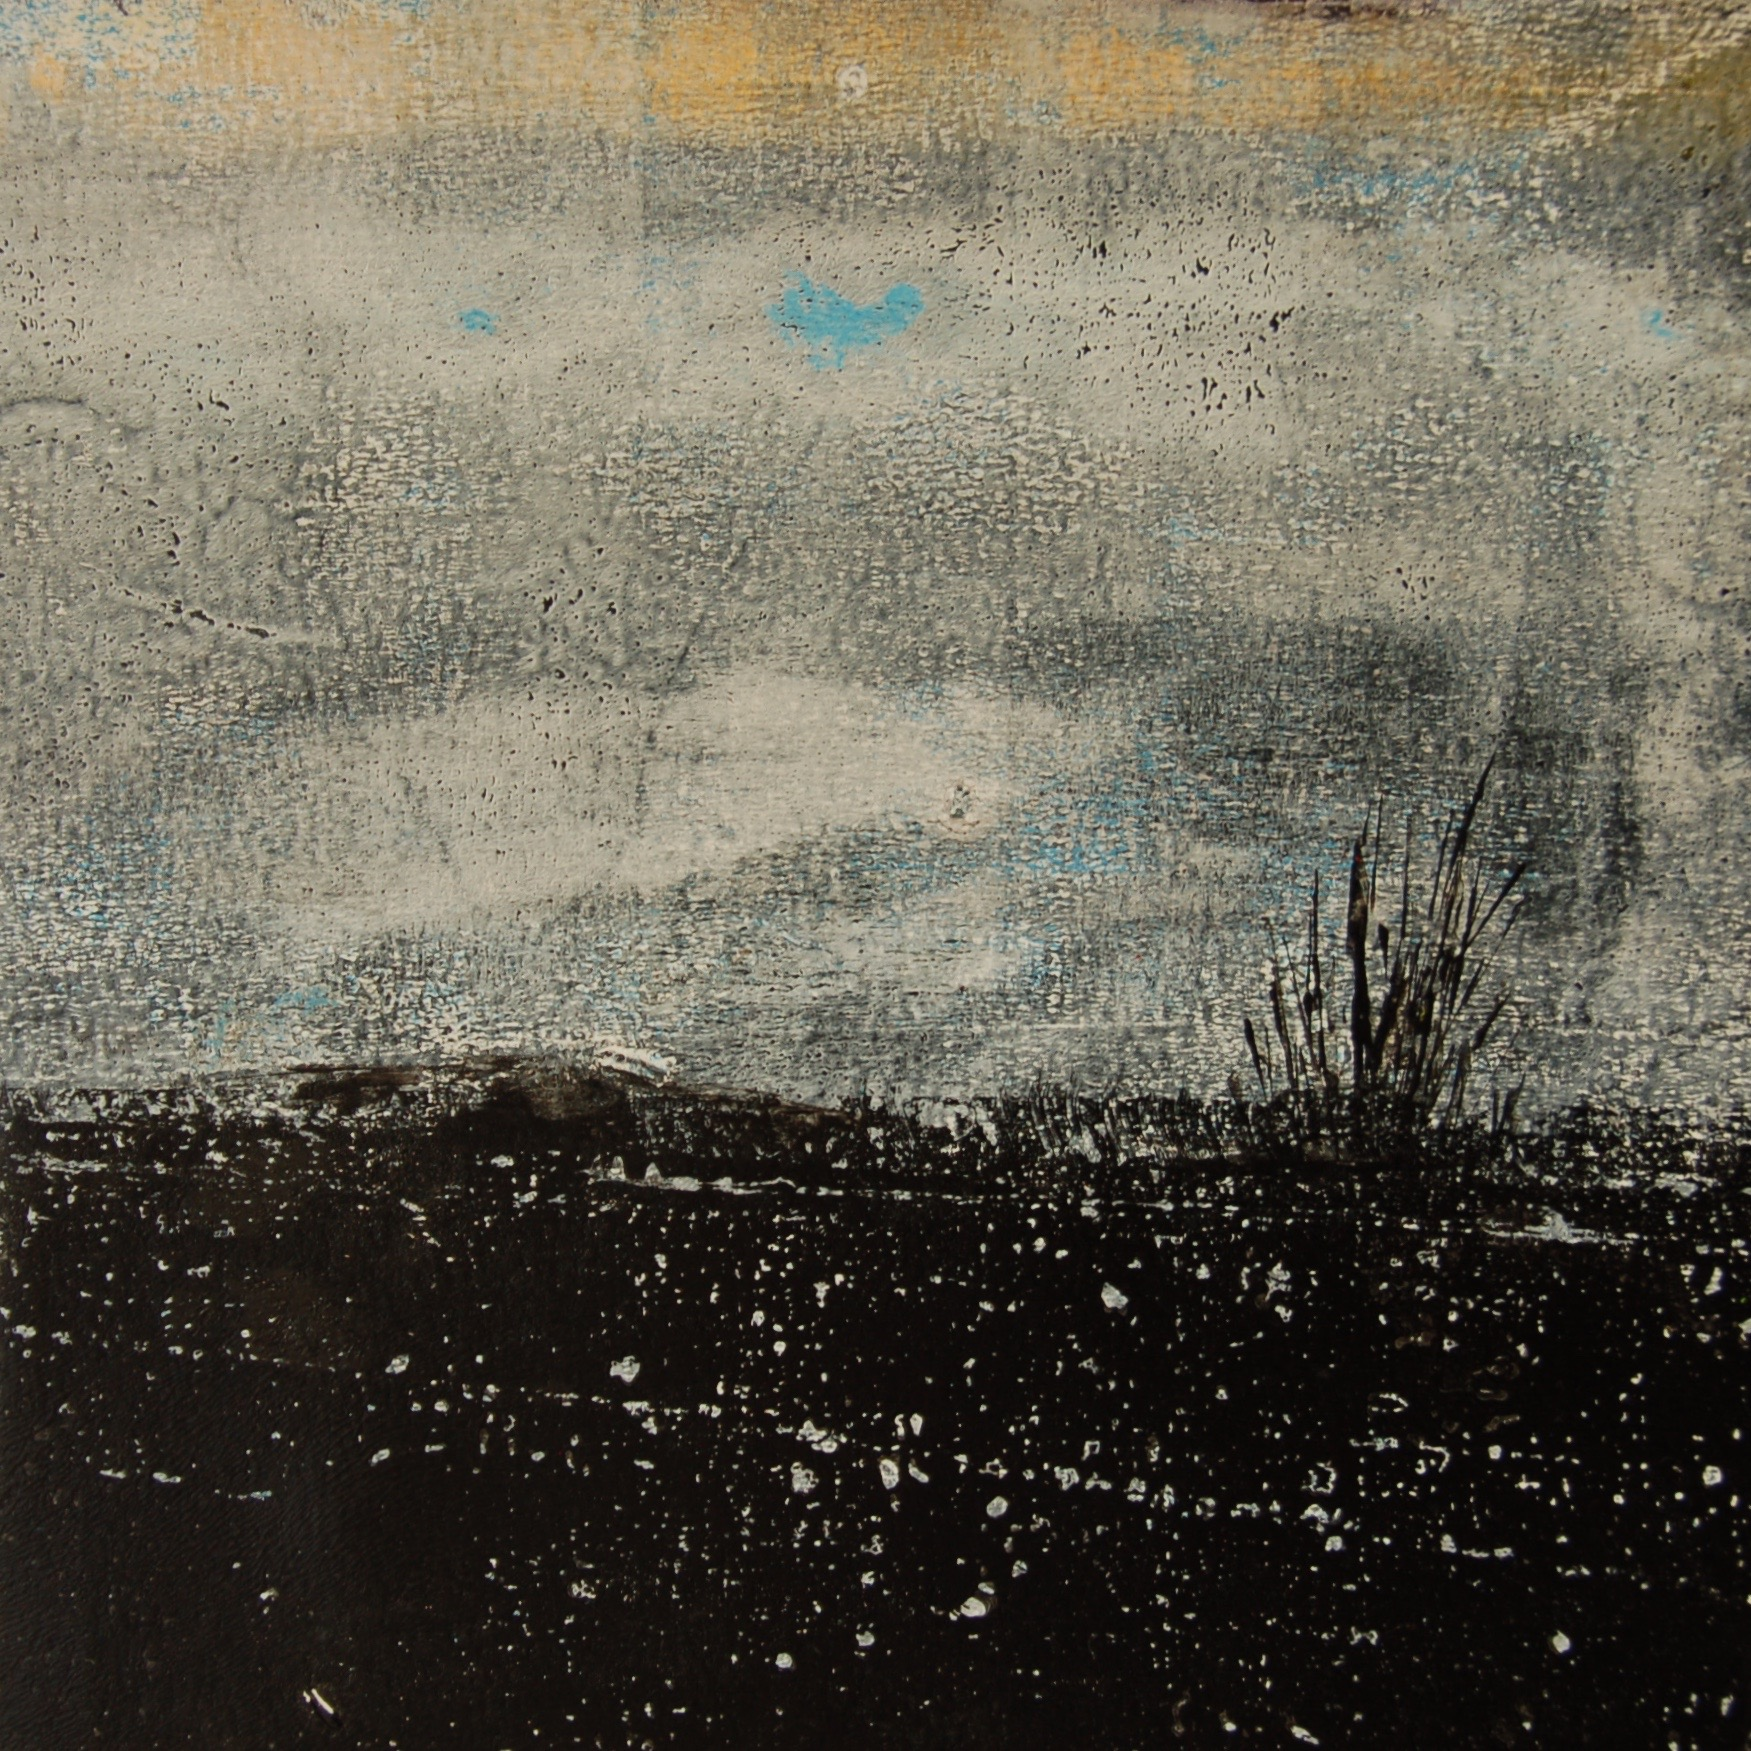 10x10 monotype painting on canvas